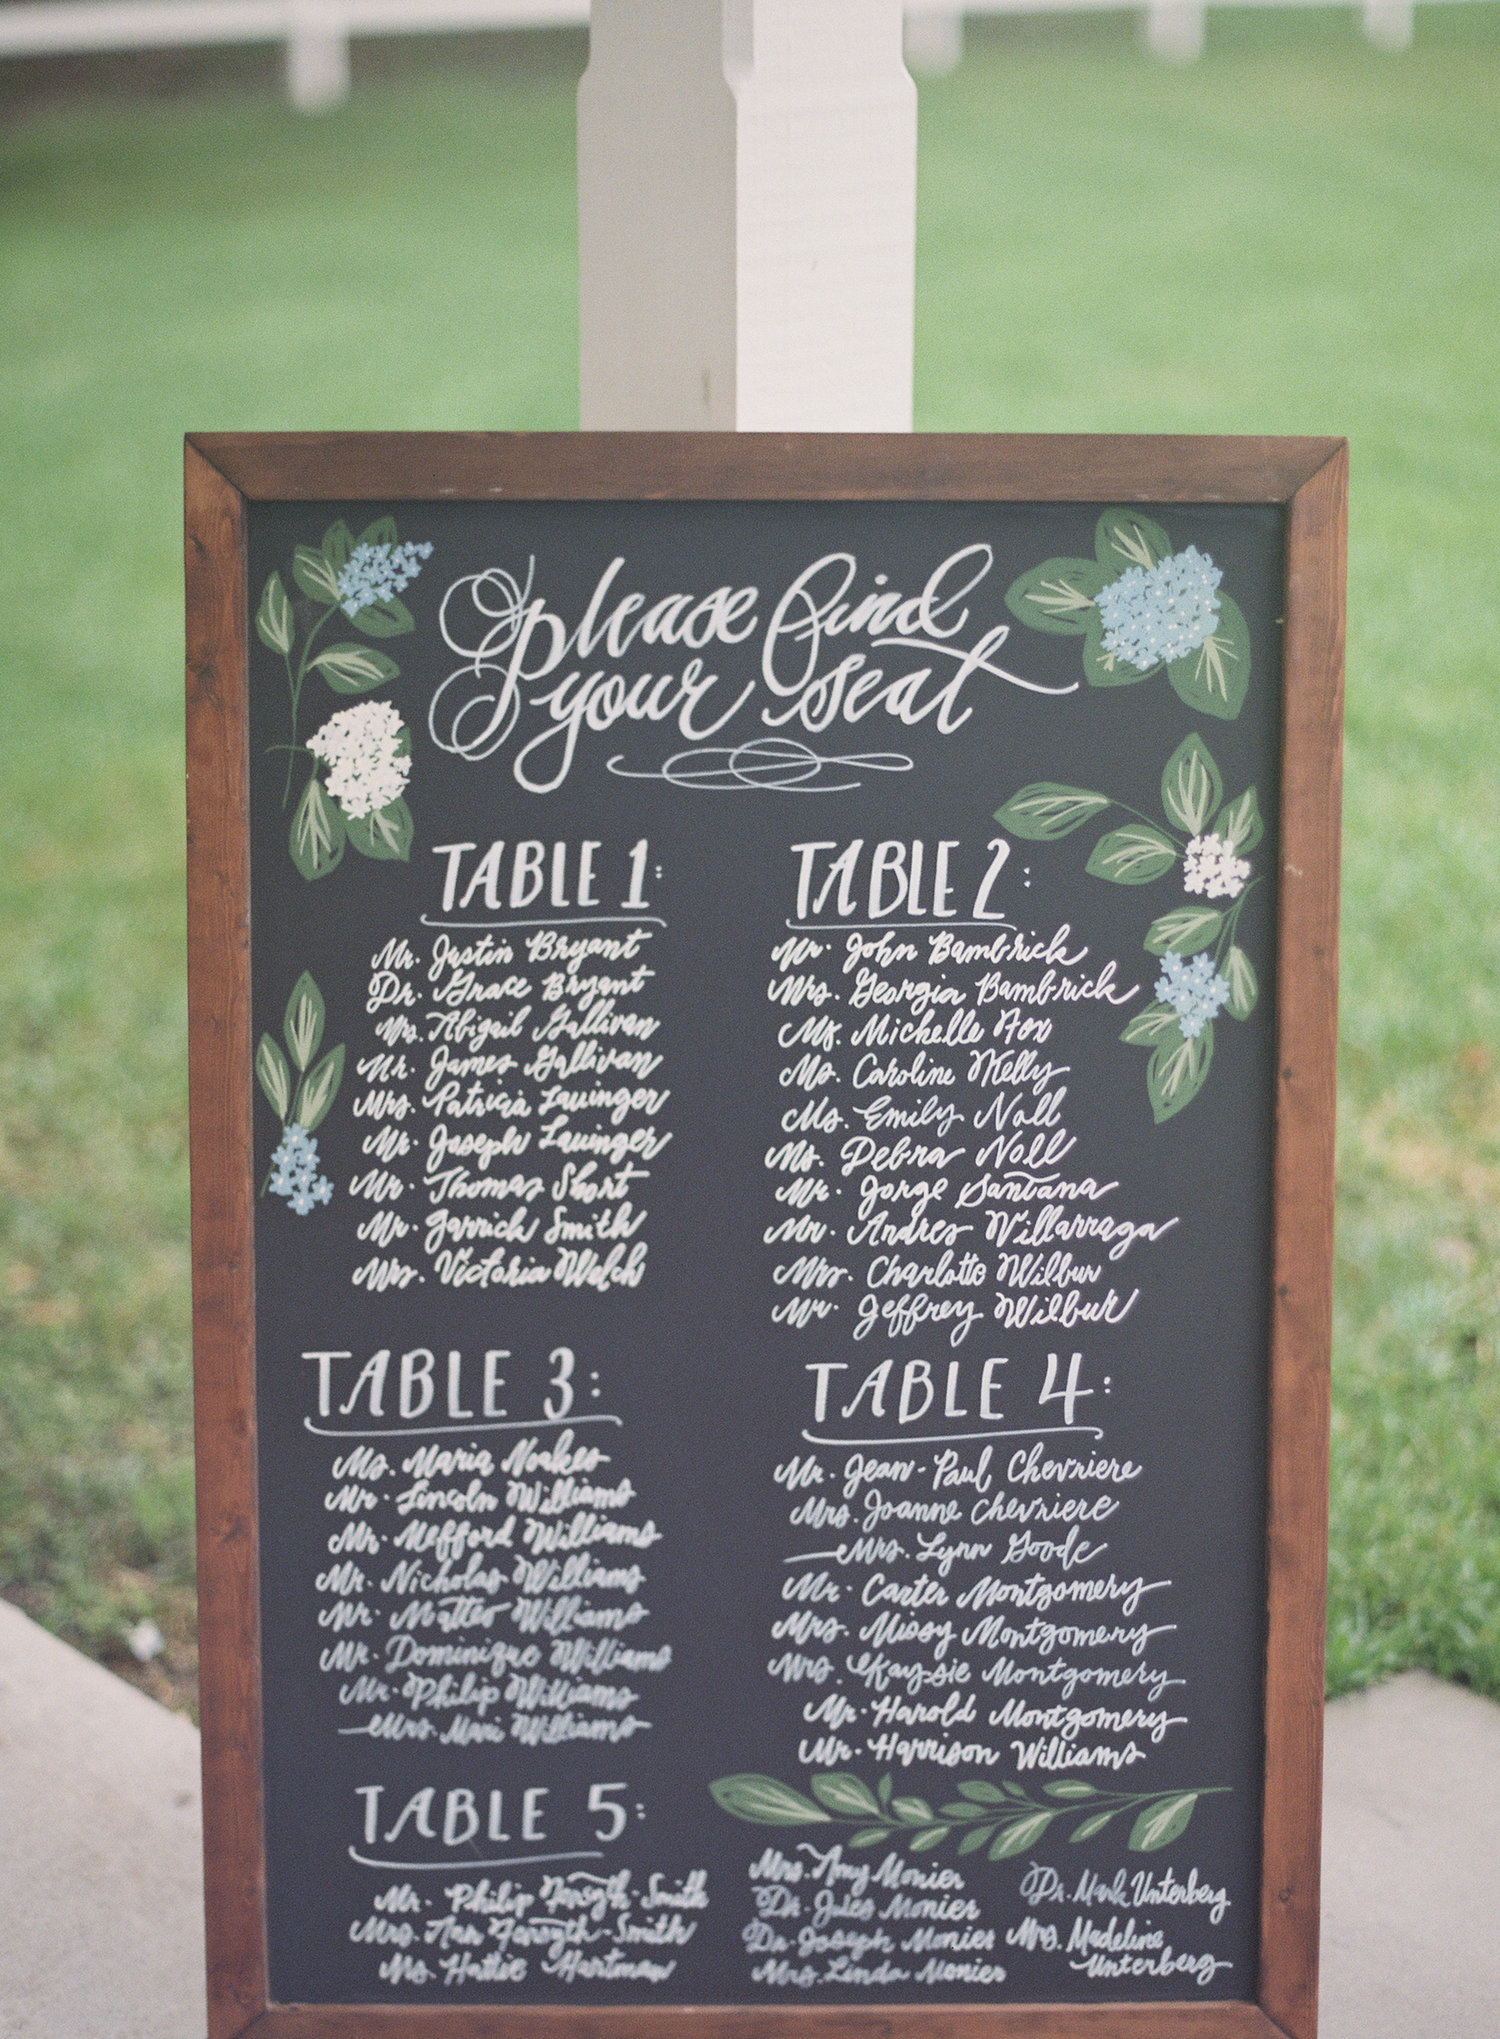 Chalk board painted with table seating for the wedding with flowers drawn around the names